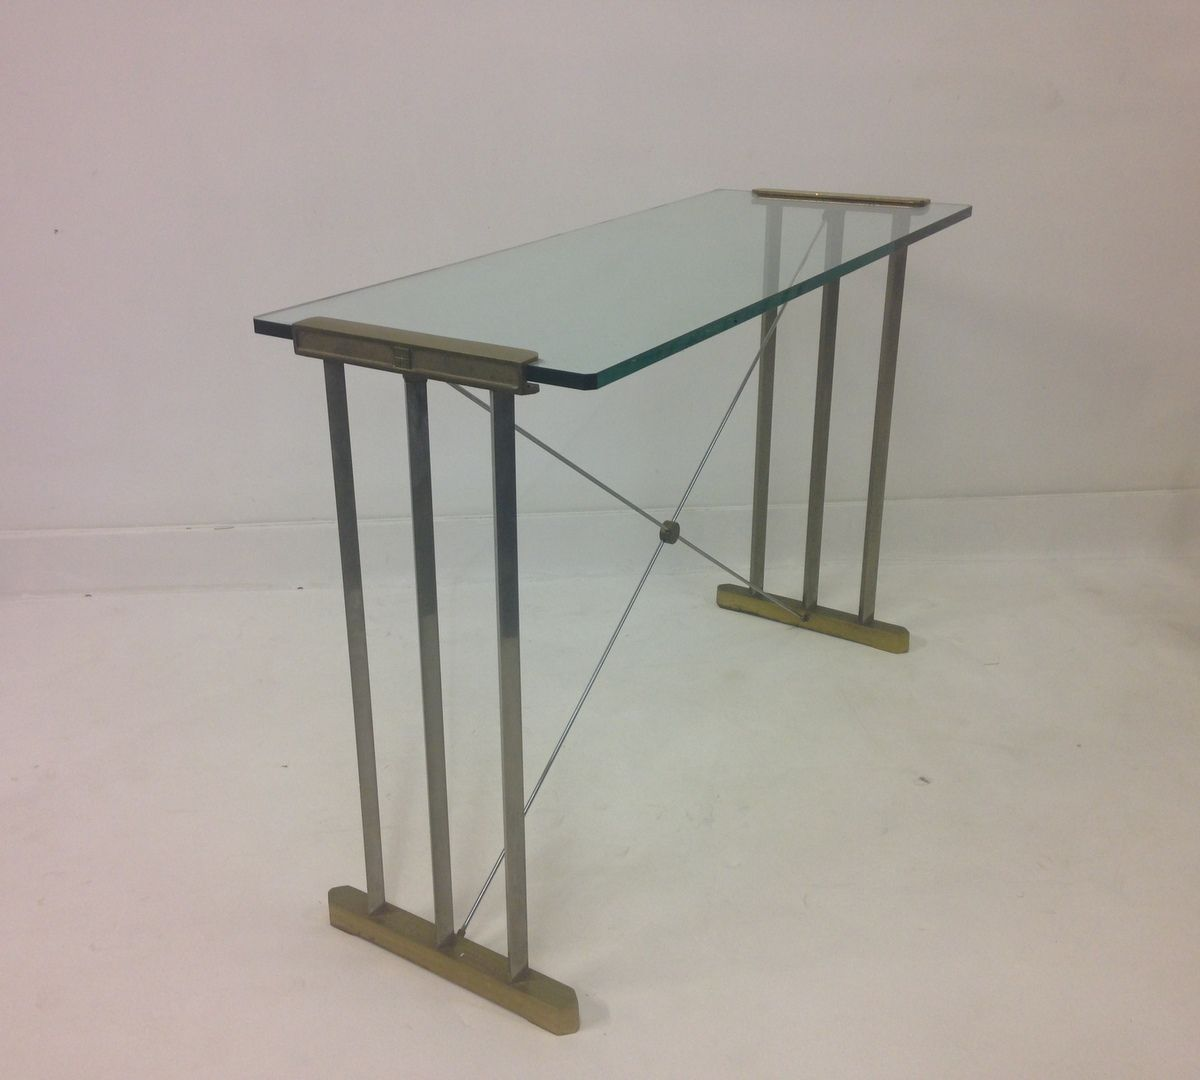 vintage brass  steel console table by peter ghyczy for sale at pamono - vintage brass  steel console table by peter ghyczy